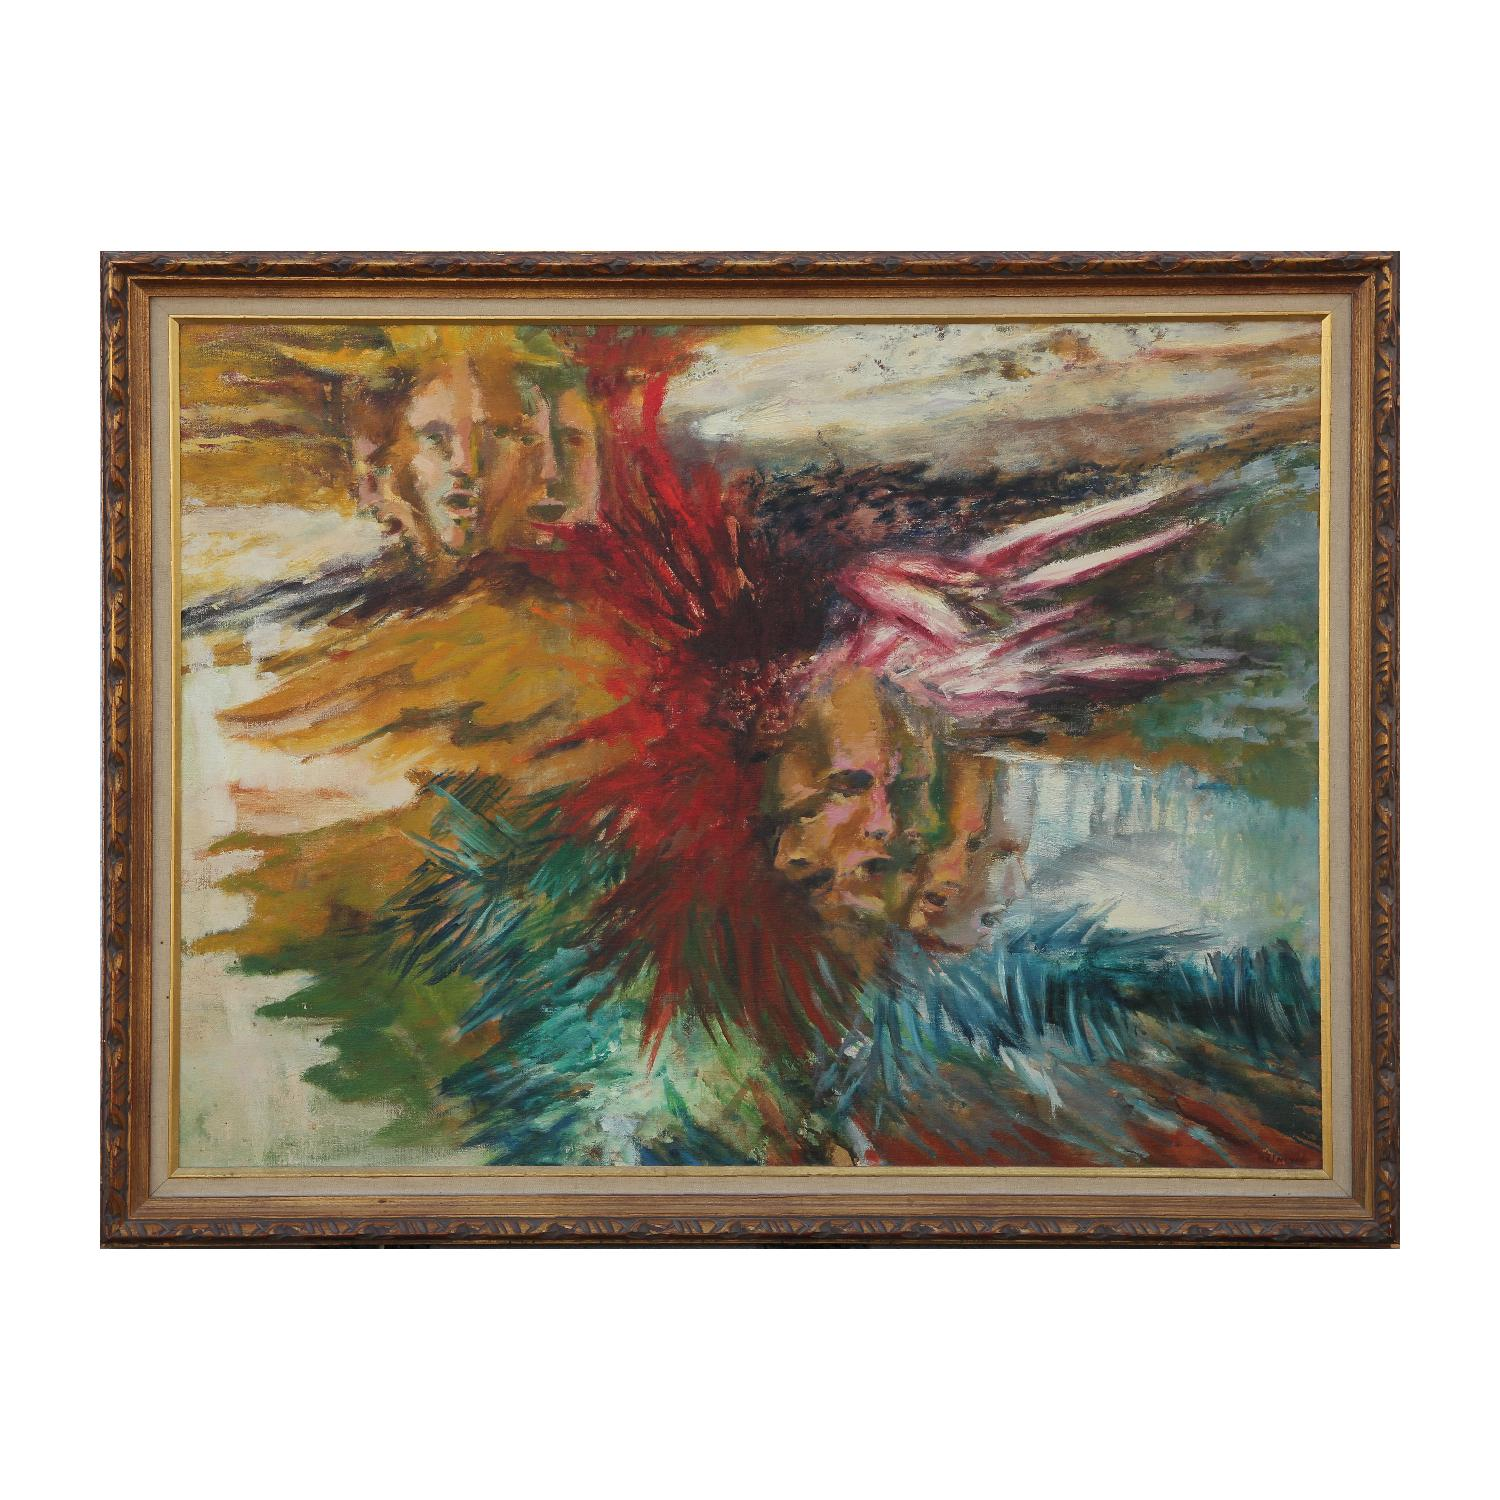 Surrealist Abstract Expressionist Painting With Faces